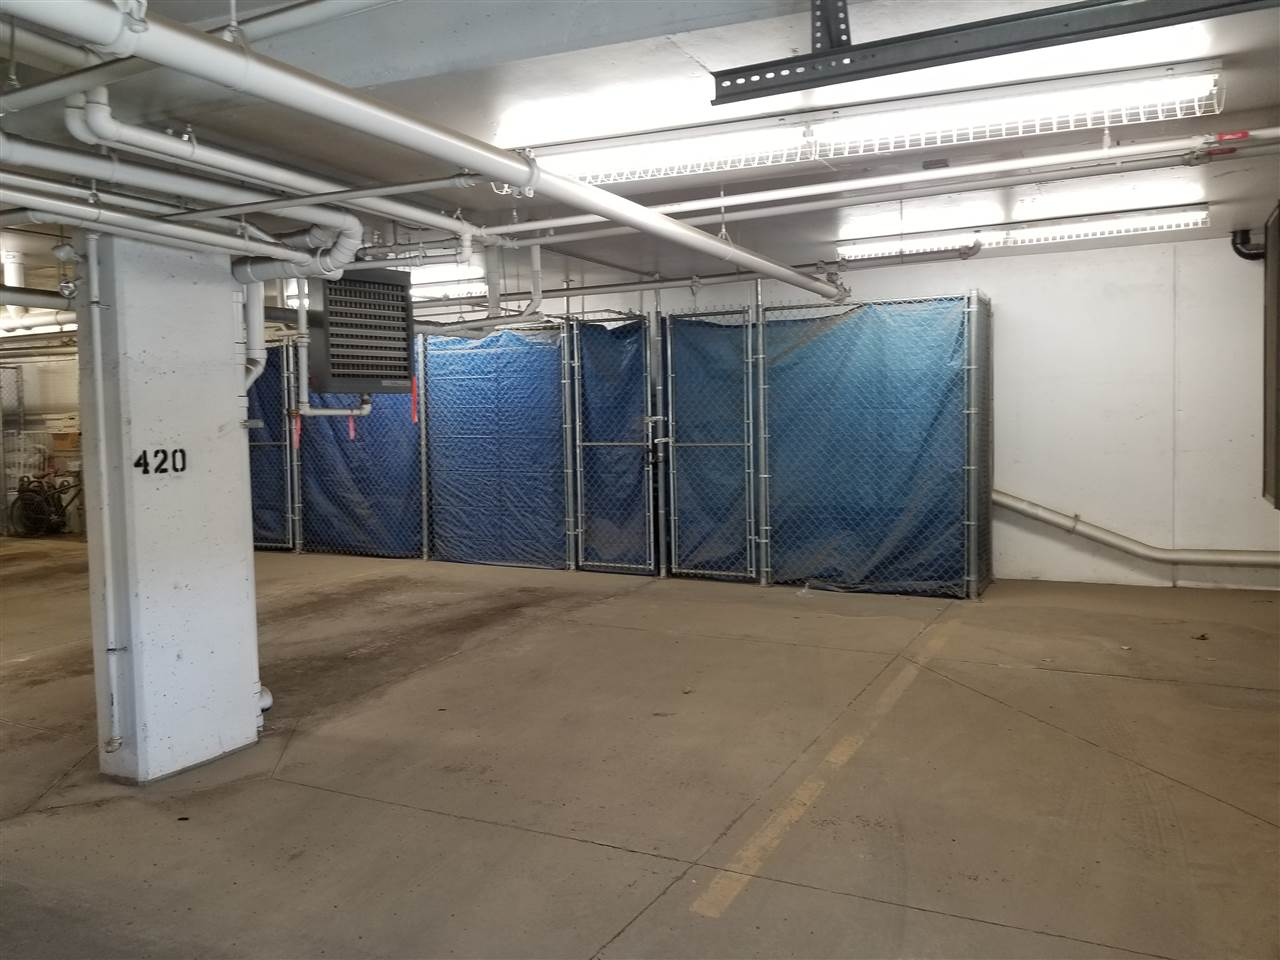 Rare opportunity to own a heated underground parking stall with storage cage in serenity gardens! 1.5X in size!